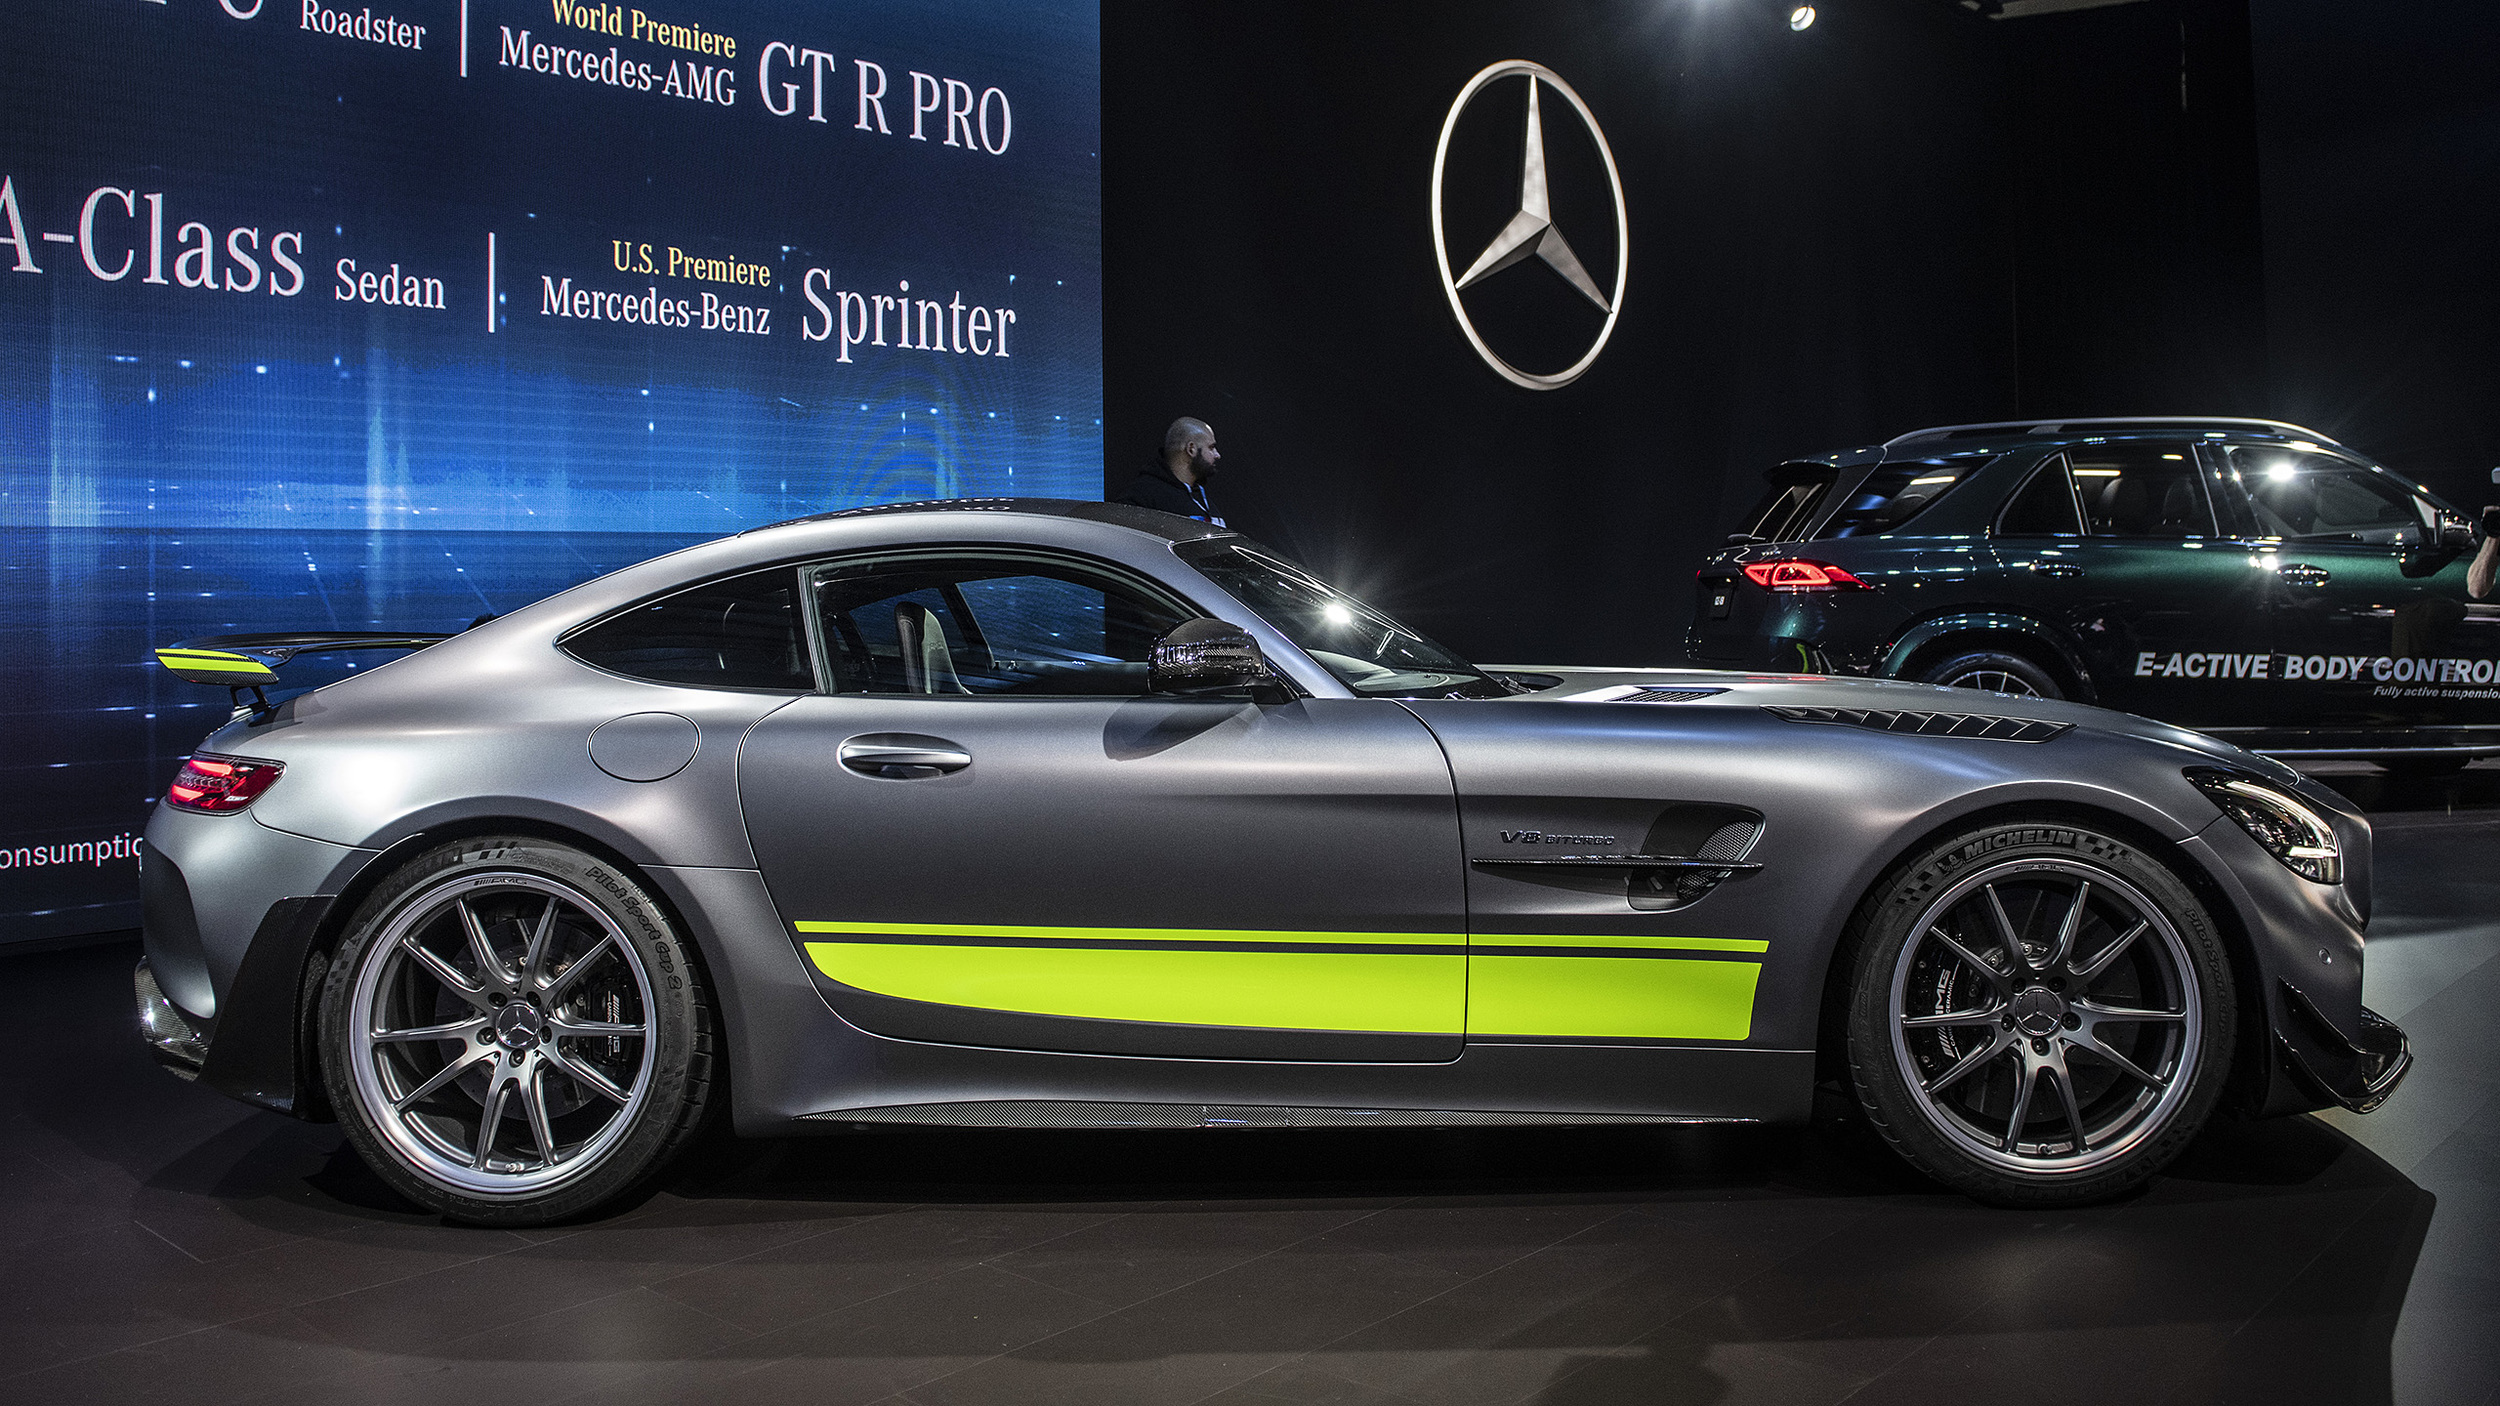 Mercedes Pre Owned >> Mercedes-AMG GT R Pro debuts in L.A. | Autoblog